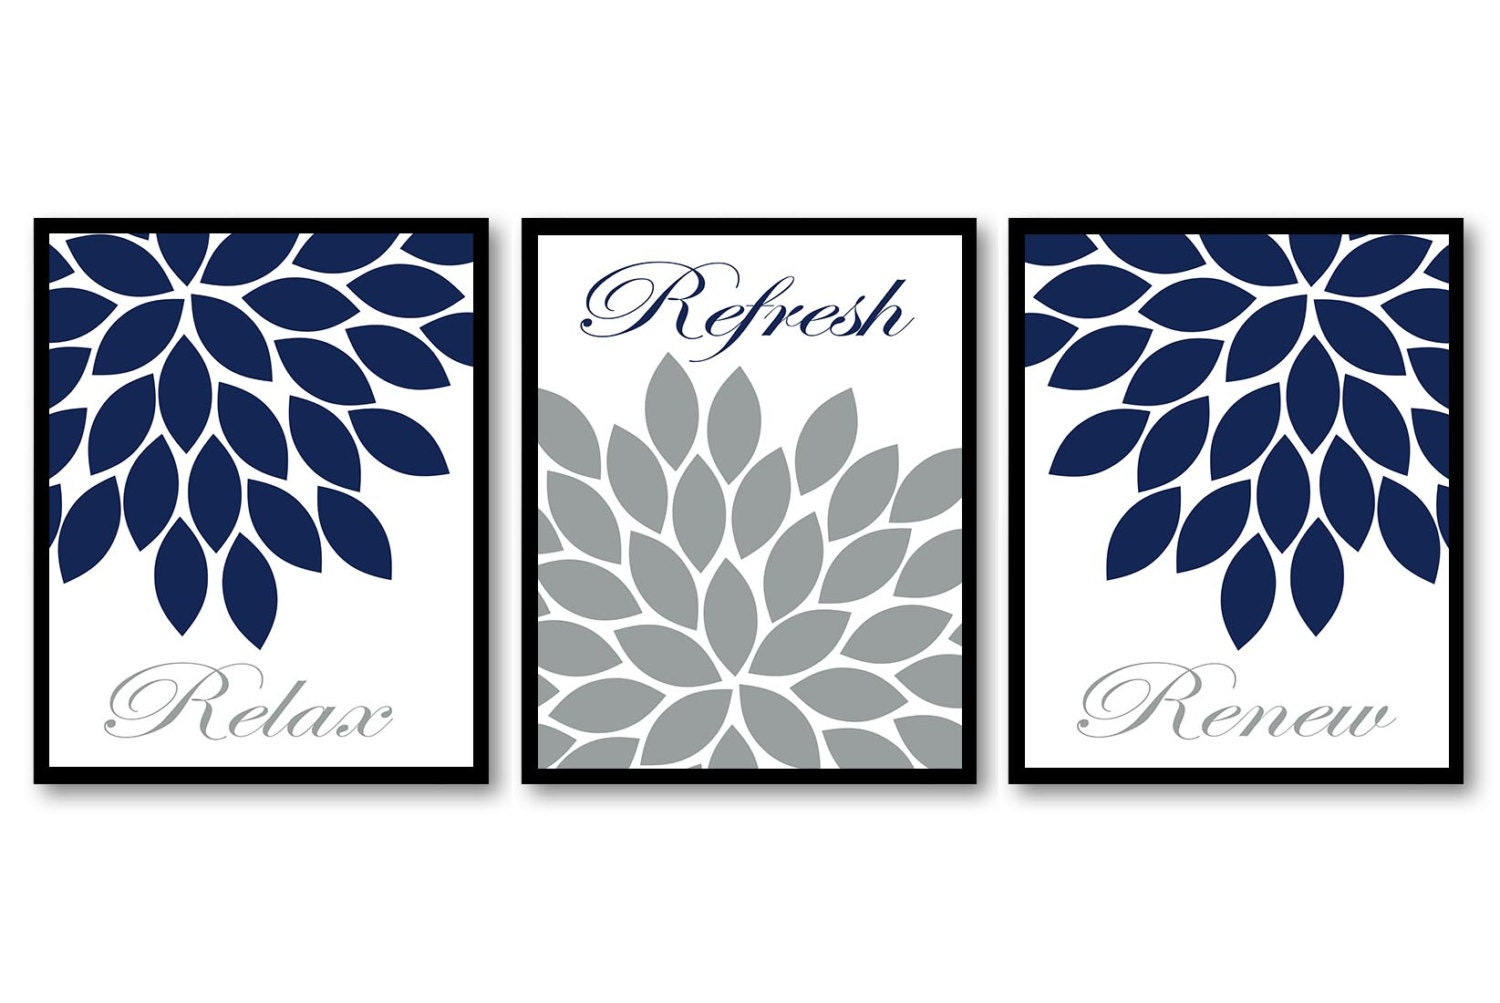 Bathroom wall decor navy blue white grey chrysanthemum flower for Navy and white bathroom accessories